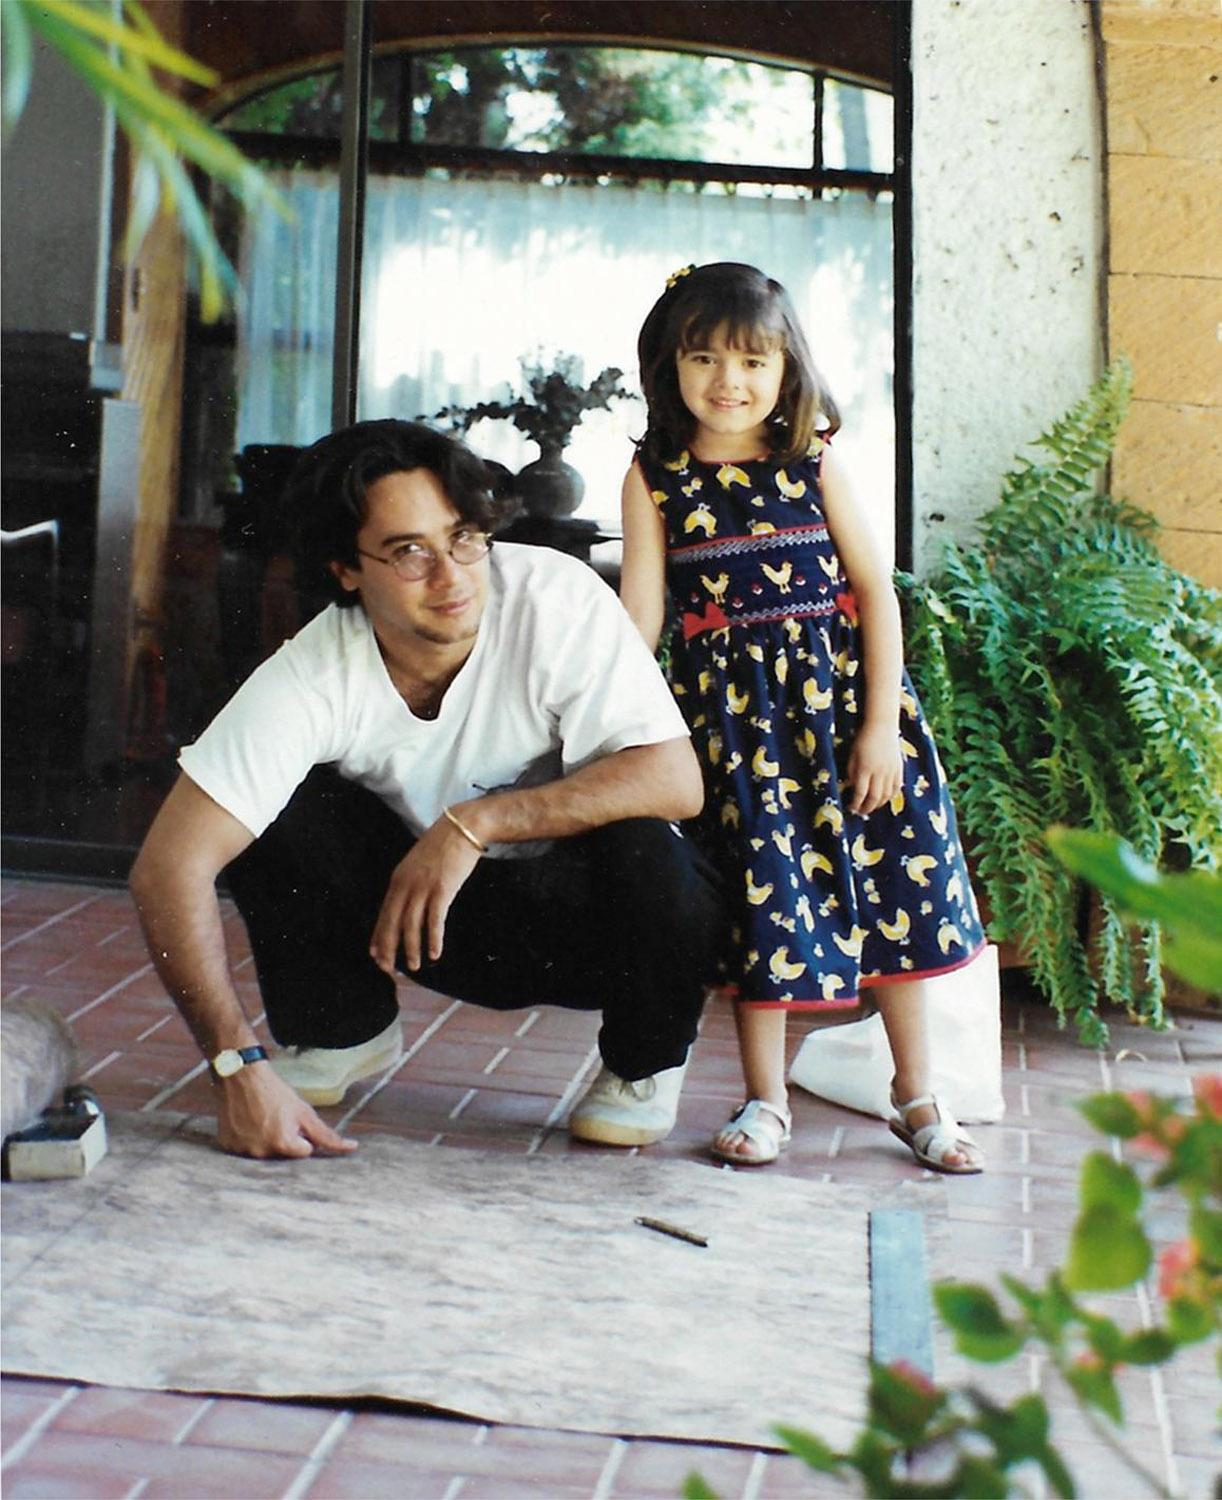 Carlos Luna and his daughter Camila examining amate paper, Atlixco, Mexico, 1997